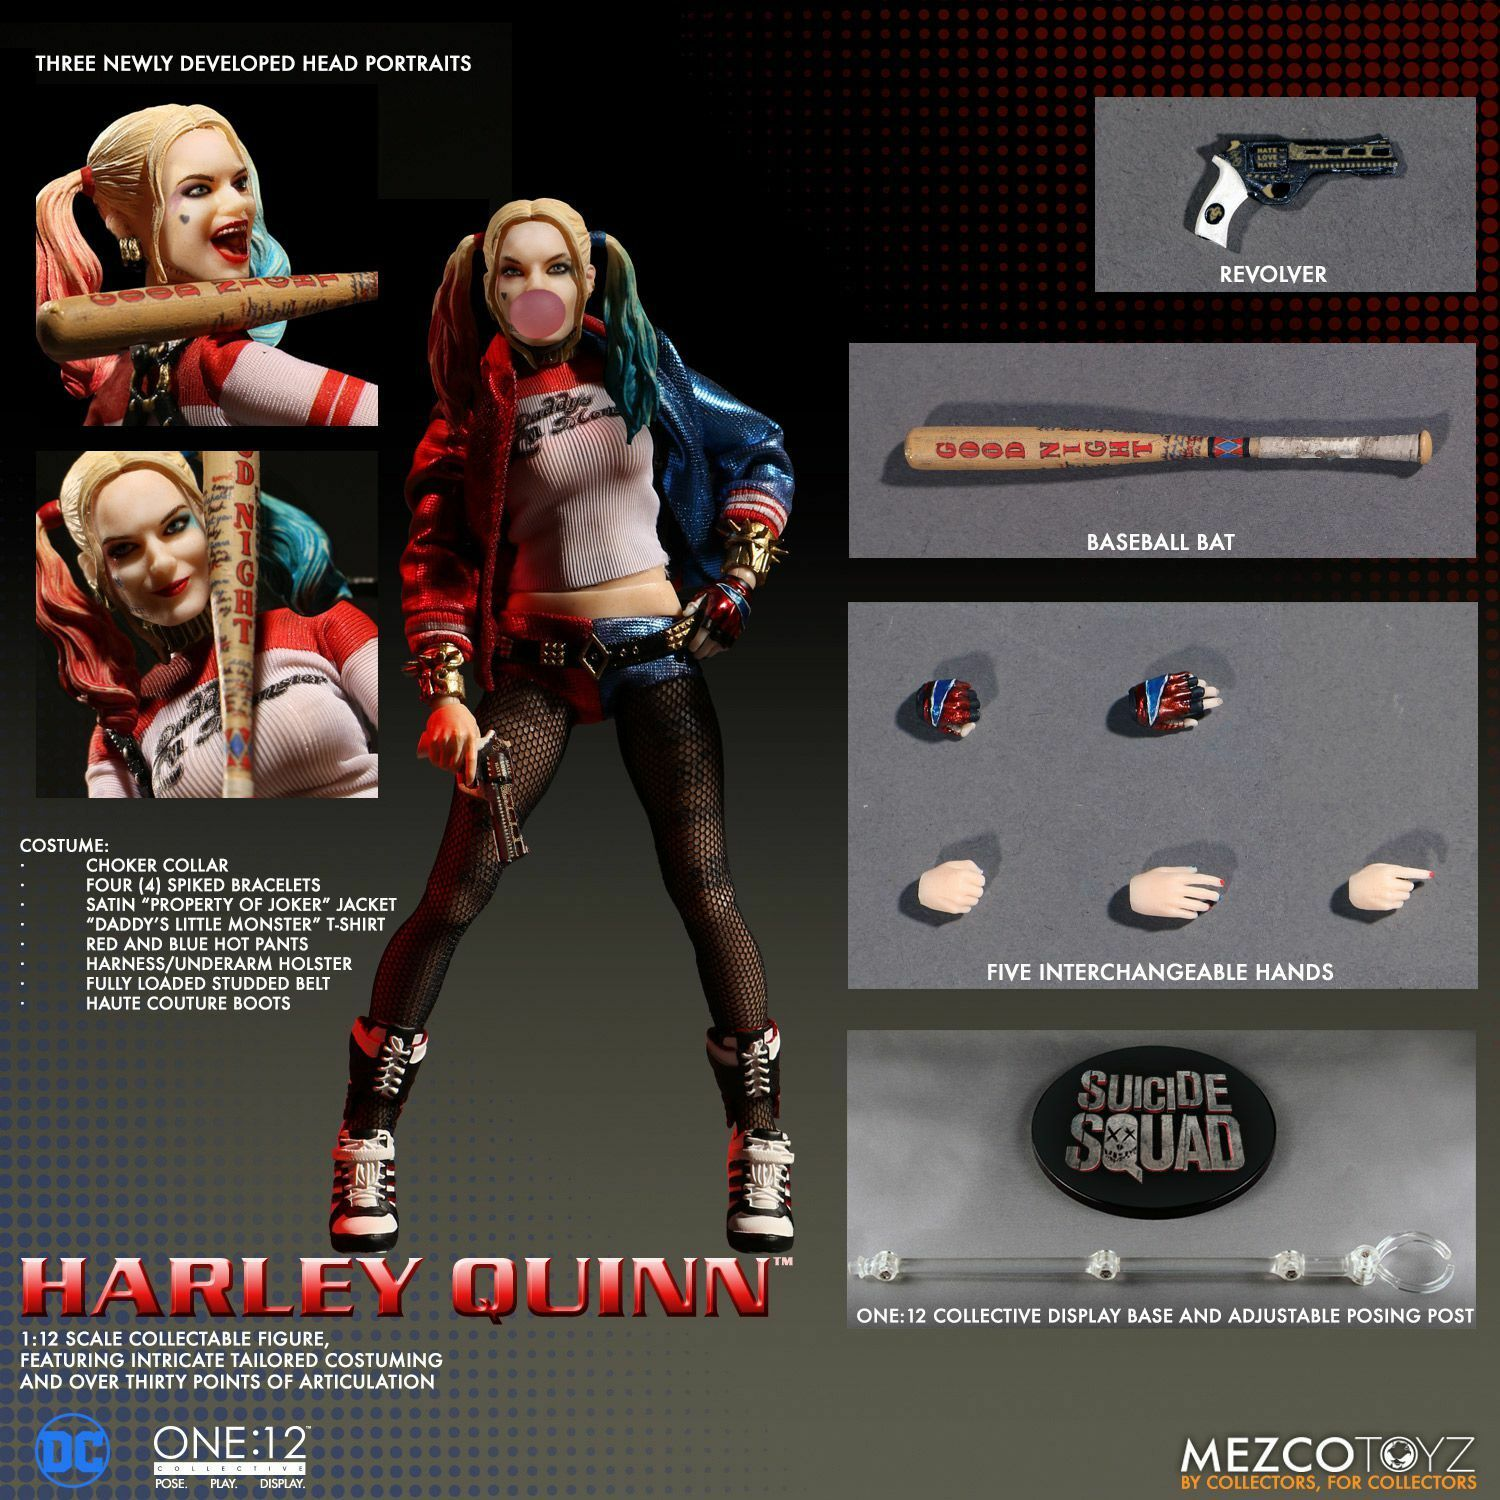 Mezco Toyz Harley Quinn ONE 12 suicide collectif Squad 6  Inch Action Figure